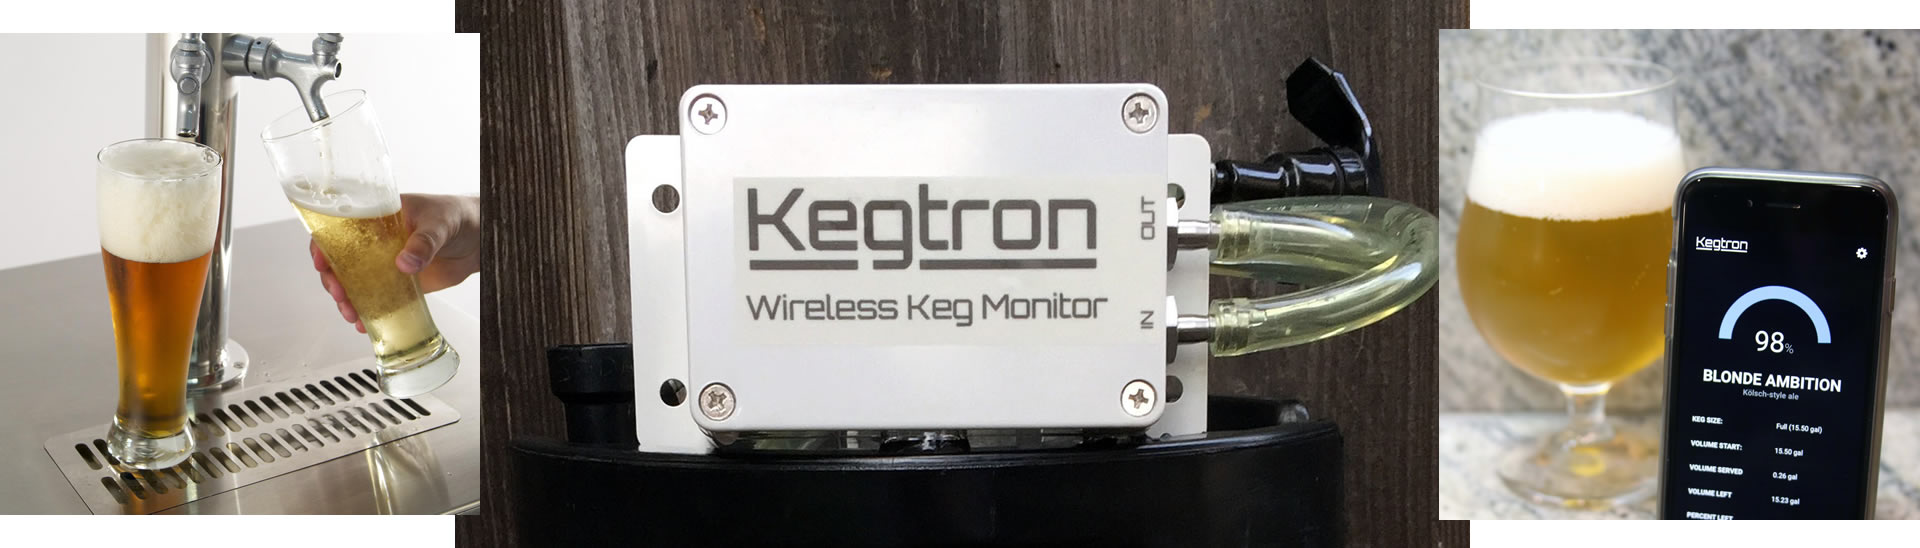 hight resolution of kegtron and brewskey both make installation very simple and have some cool features that set them apart from each other i got a first look at both the